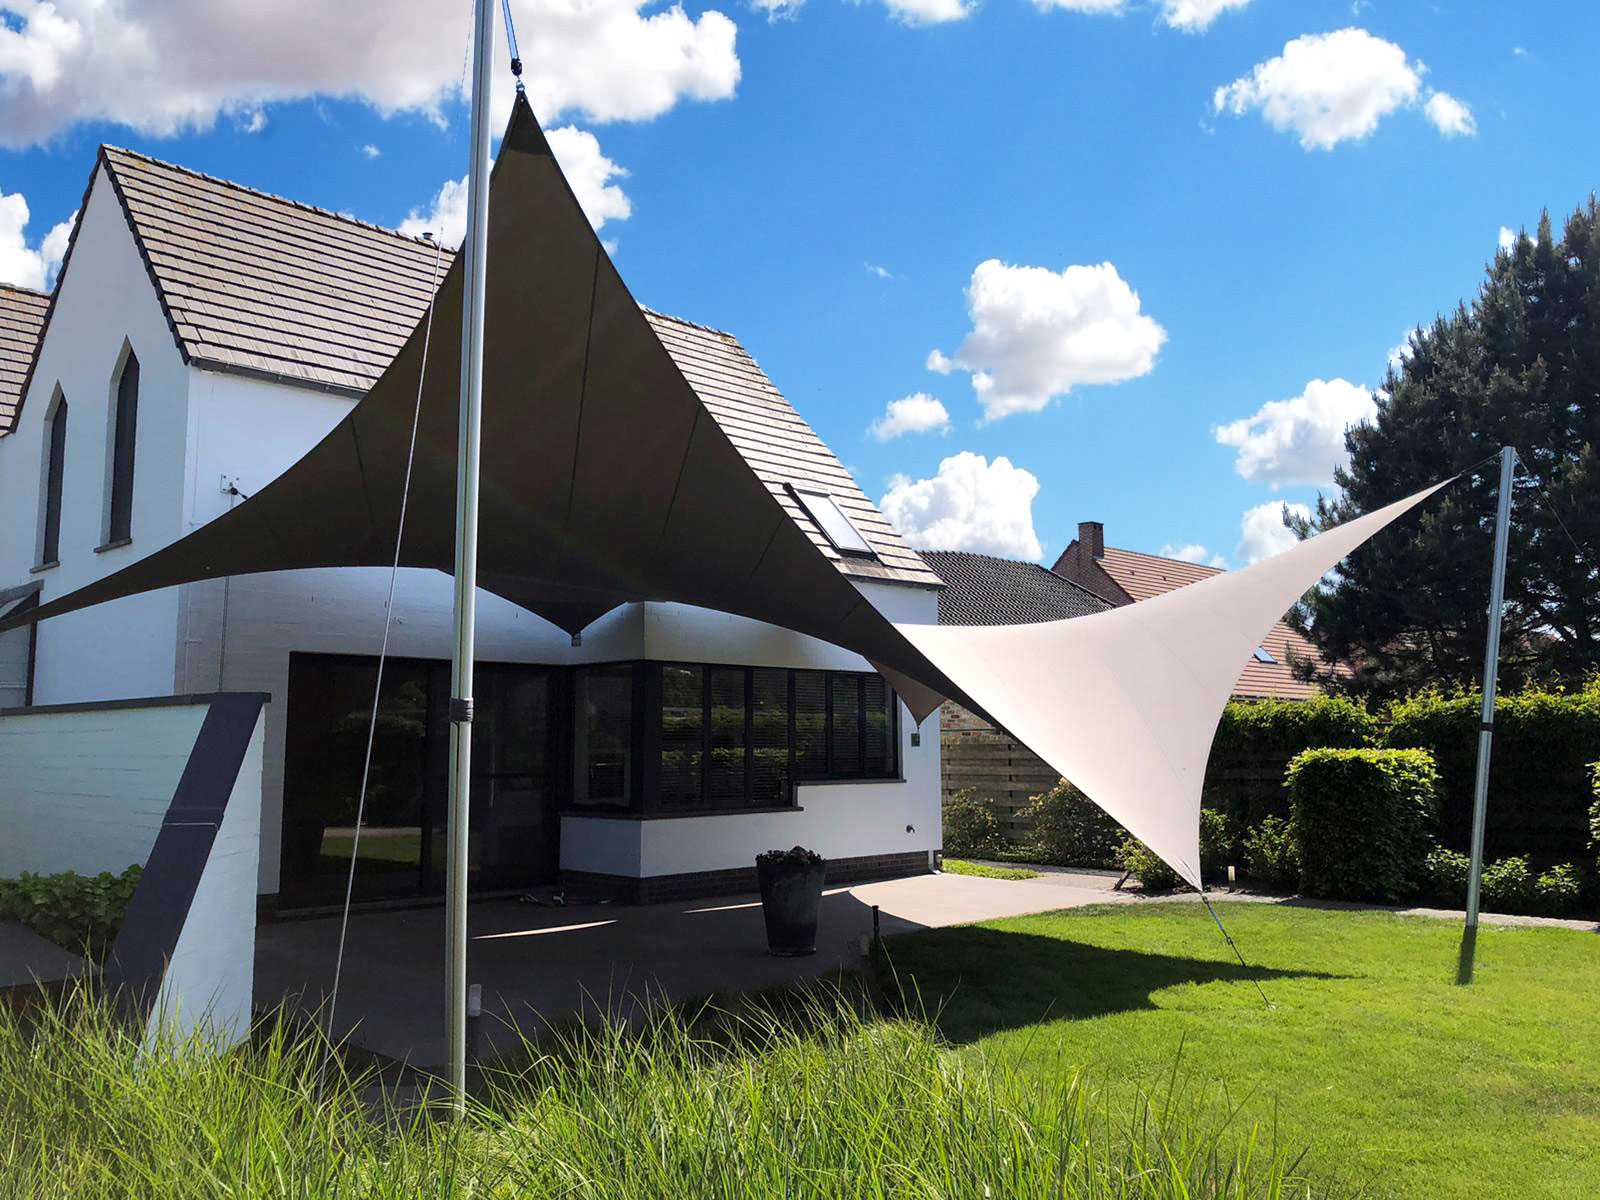 patio-roof-textile-home-residence-removable-lightweight-outdoor-cover-hurricane-design-extreme-weather